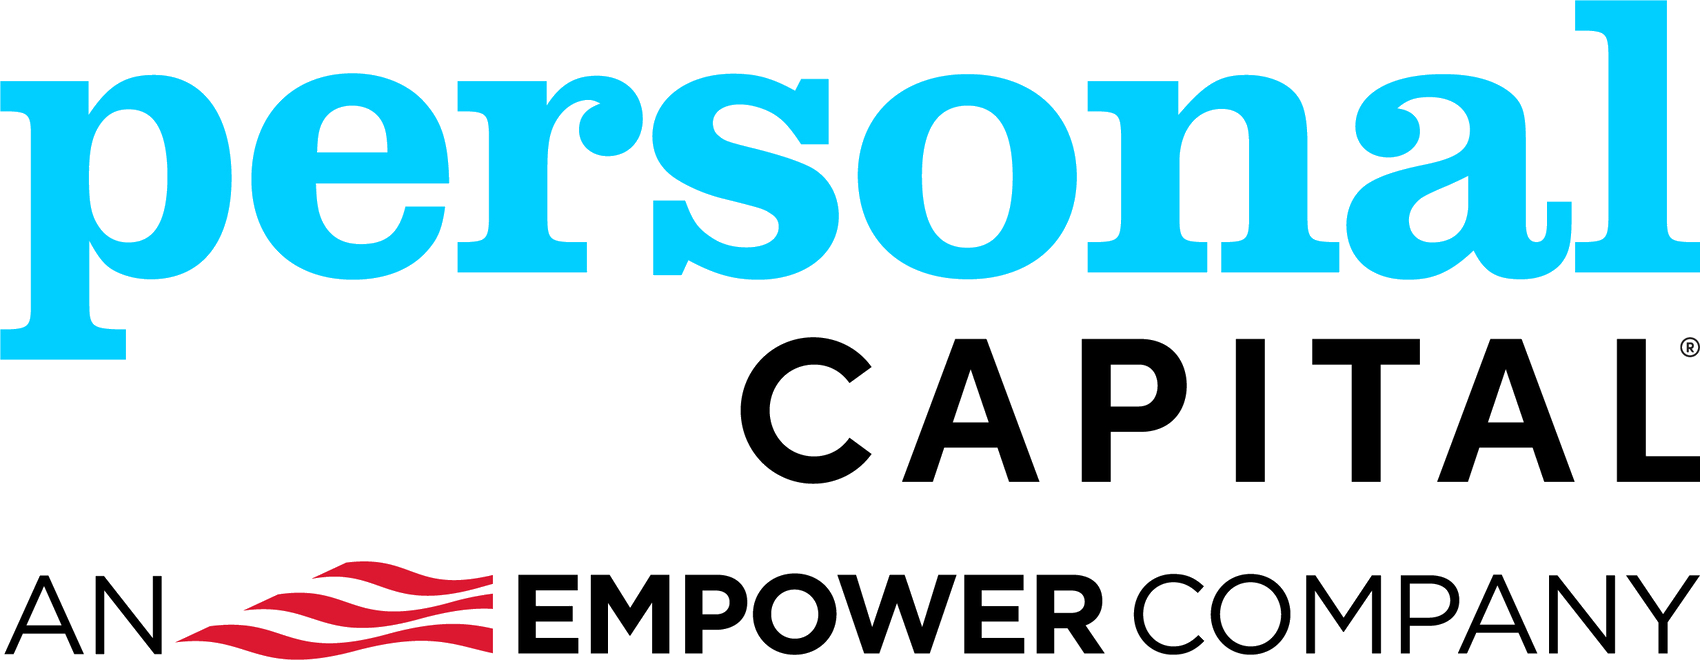 Personal Capital, an Empower Company